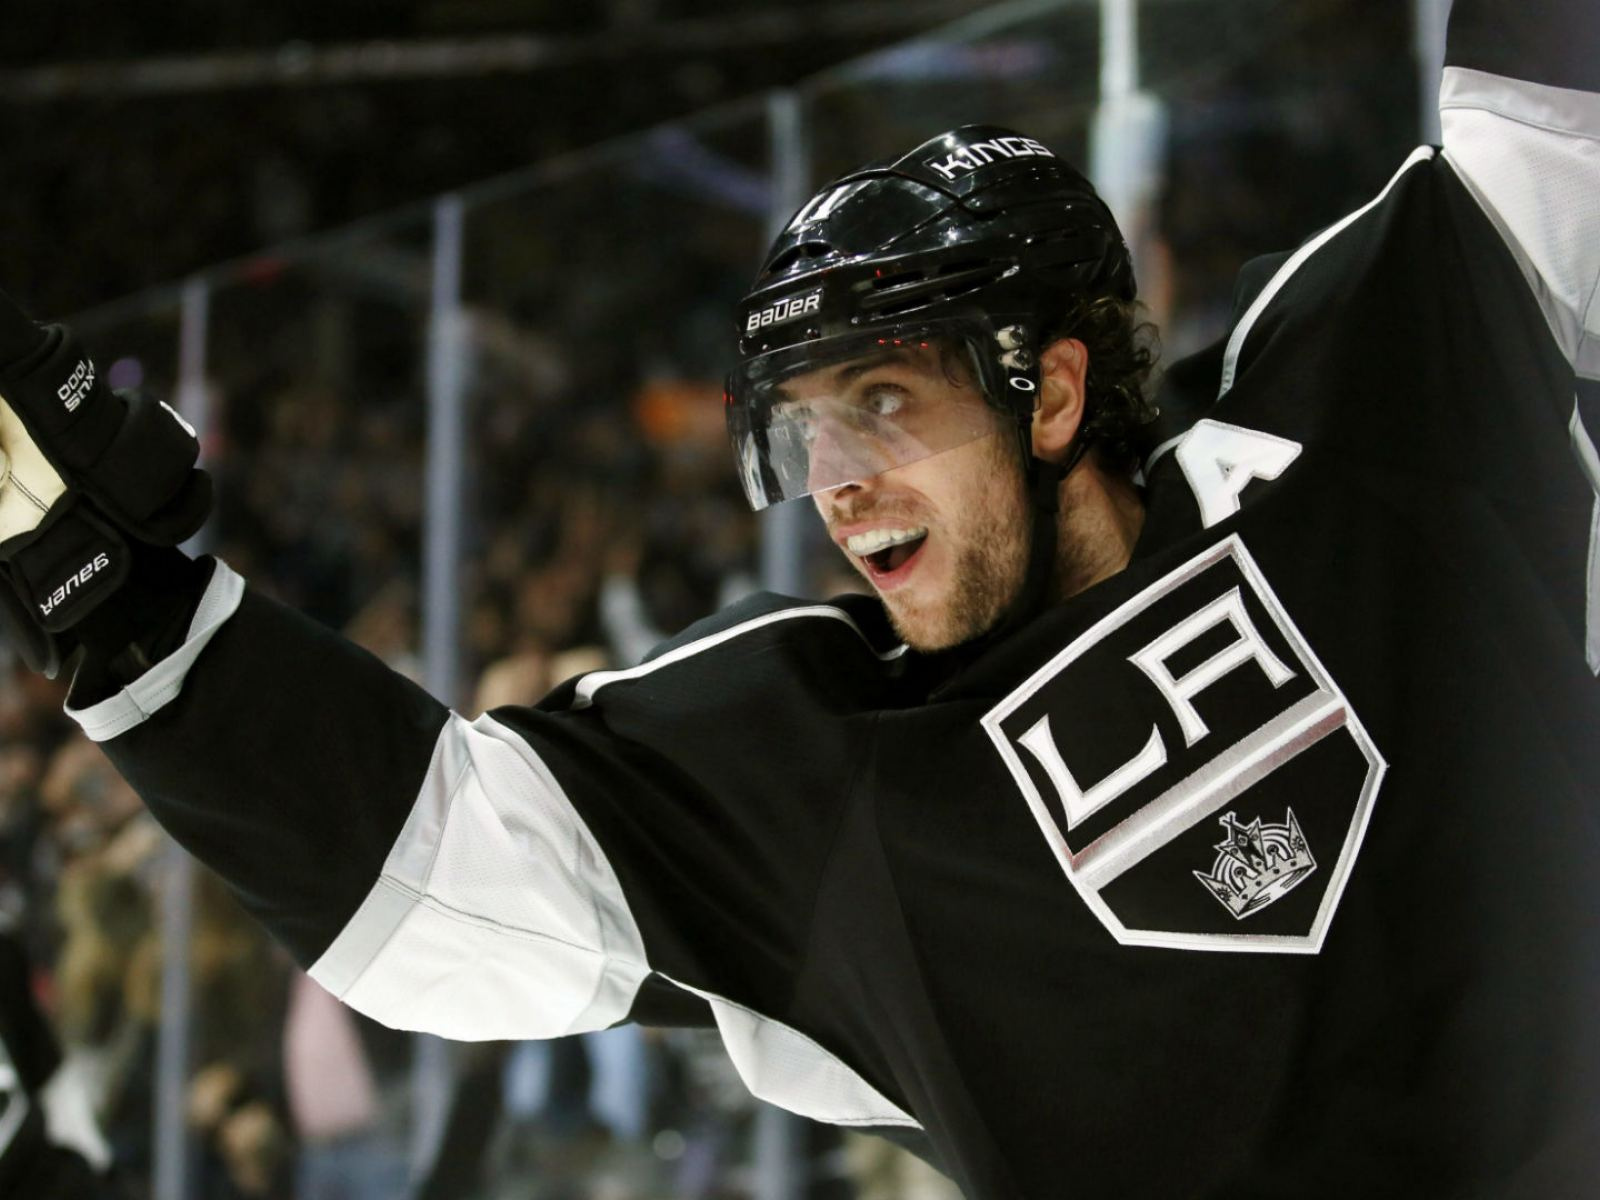 Main image for event titled L.A. Kings vs. Arizona Coyotes